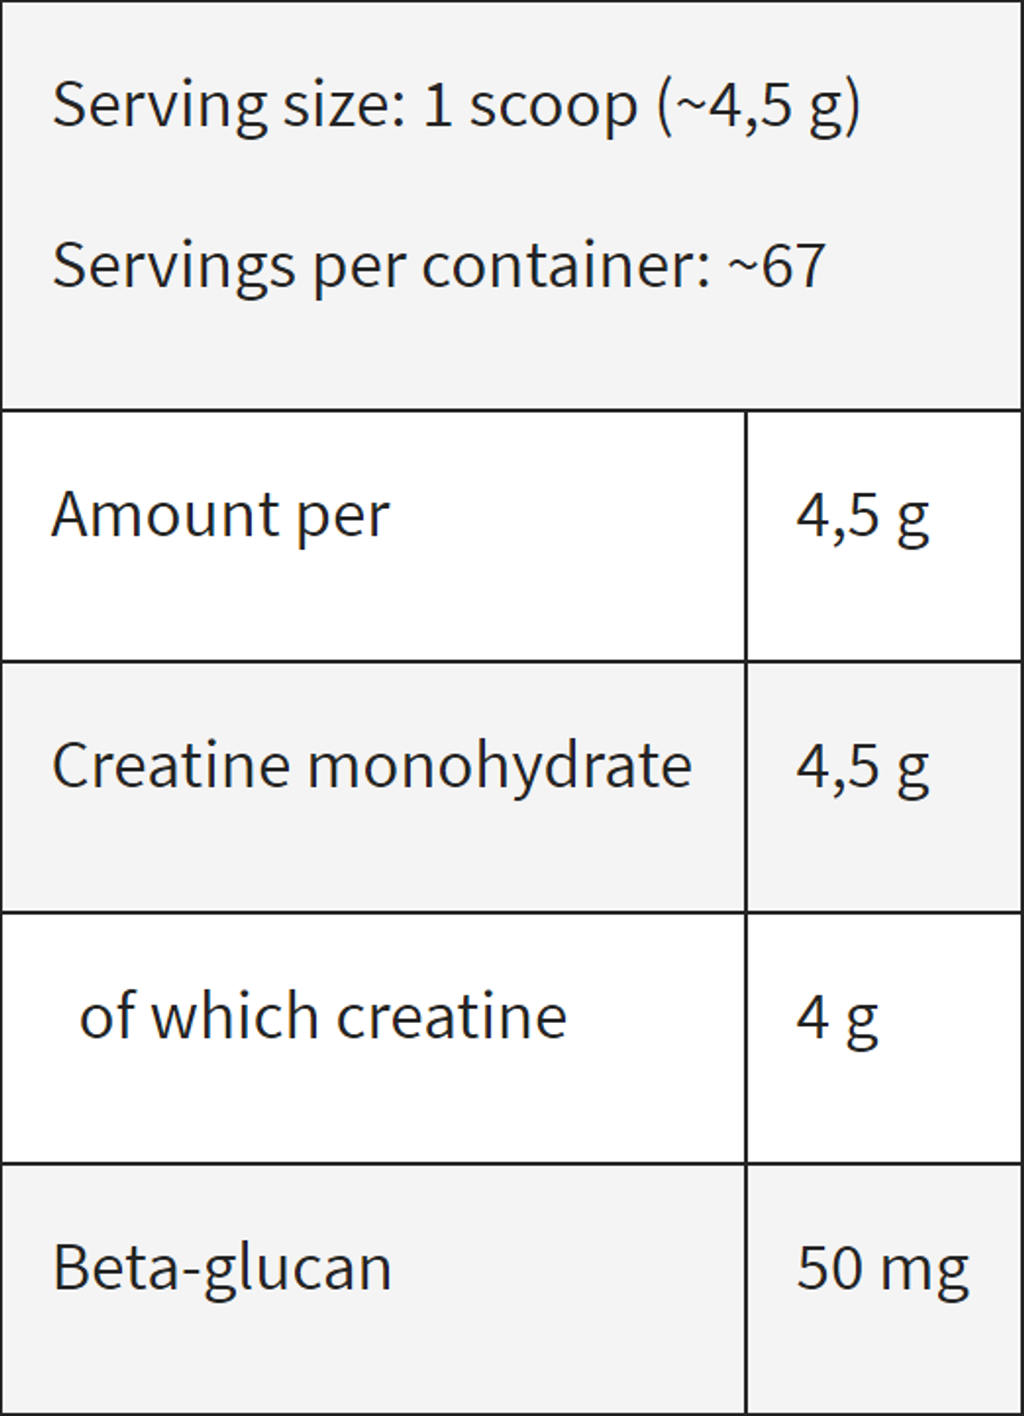 levro mono nutrition.malaysiapng.png